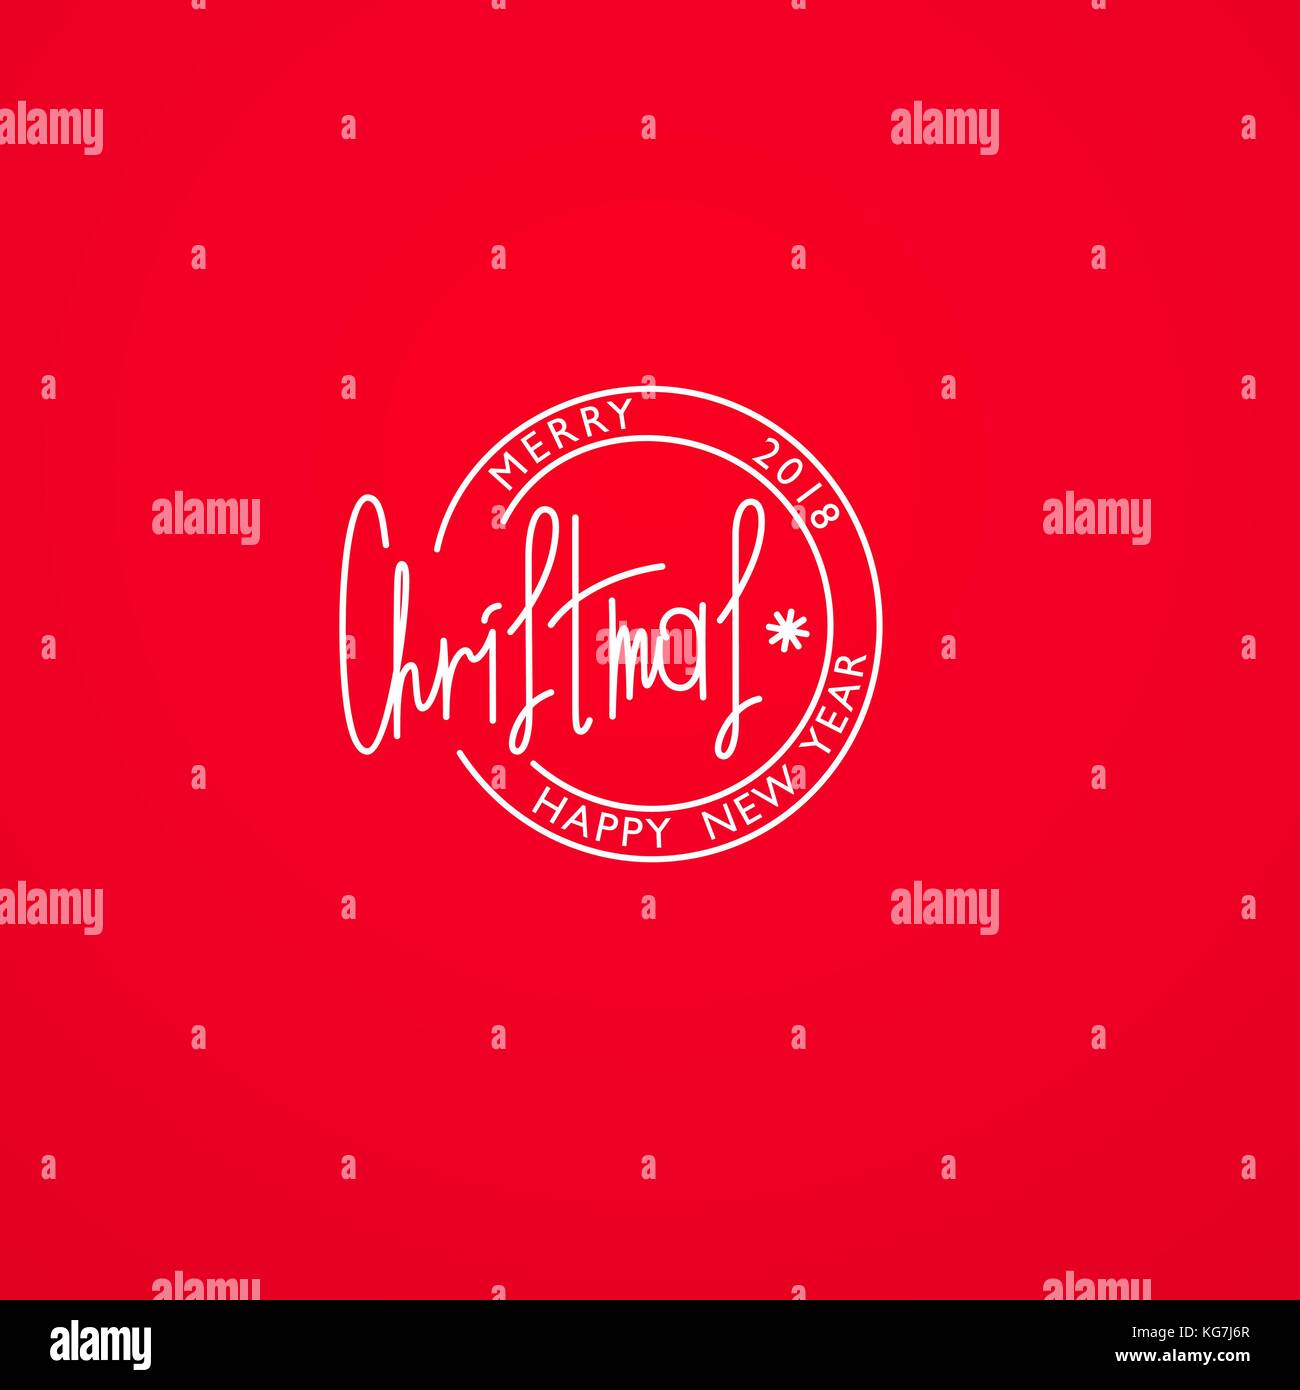 Merry christmas and happy new year poster modern linear minimalism merry christmas and happy new year poster modern linear minimalism vector template design for greetings kristyandbryce Images